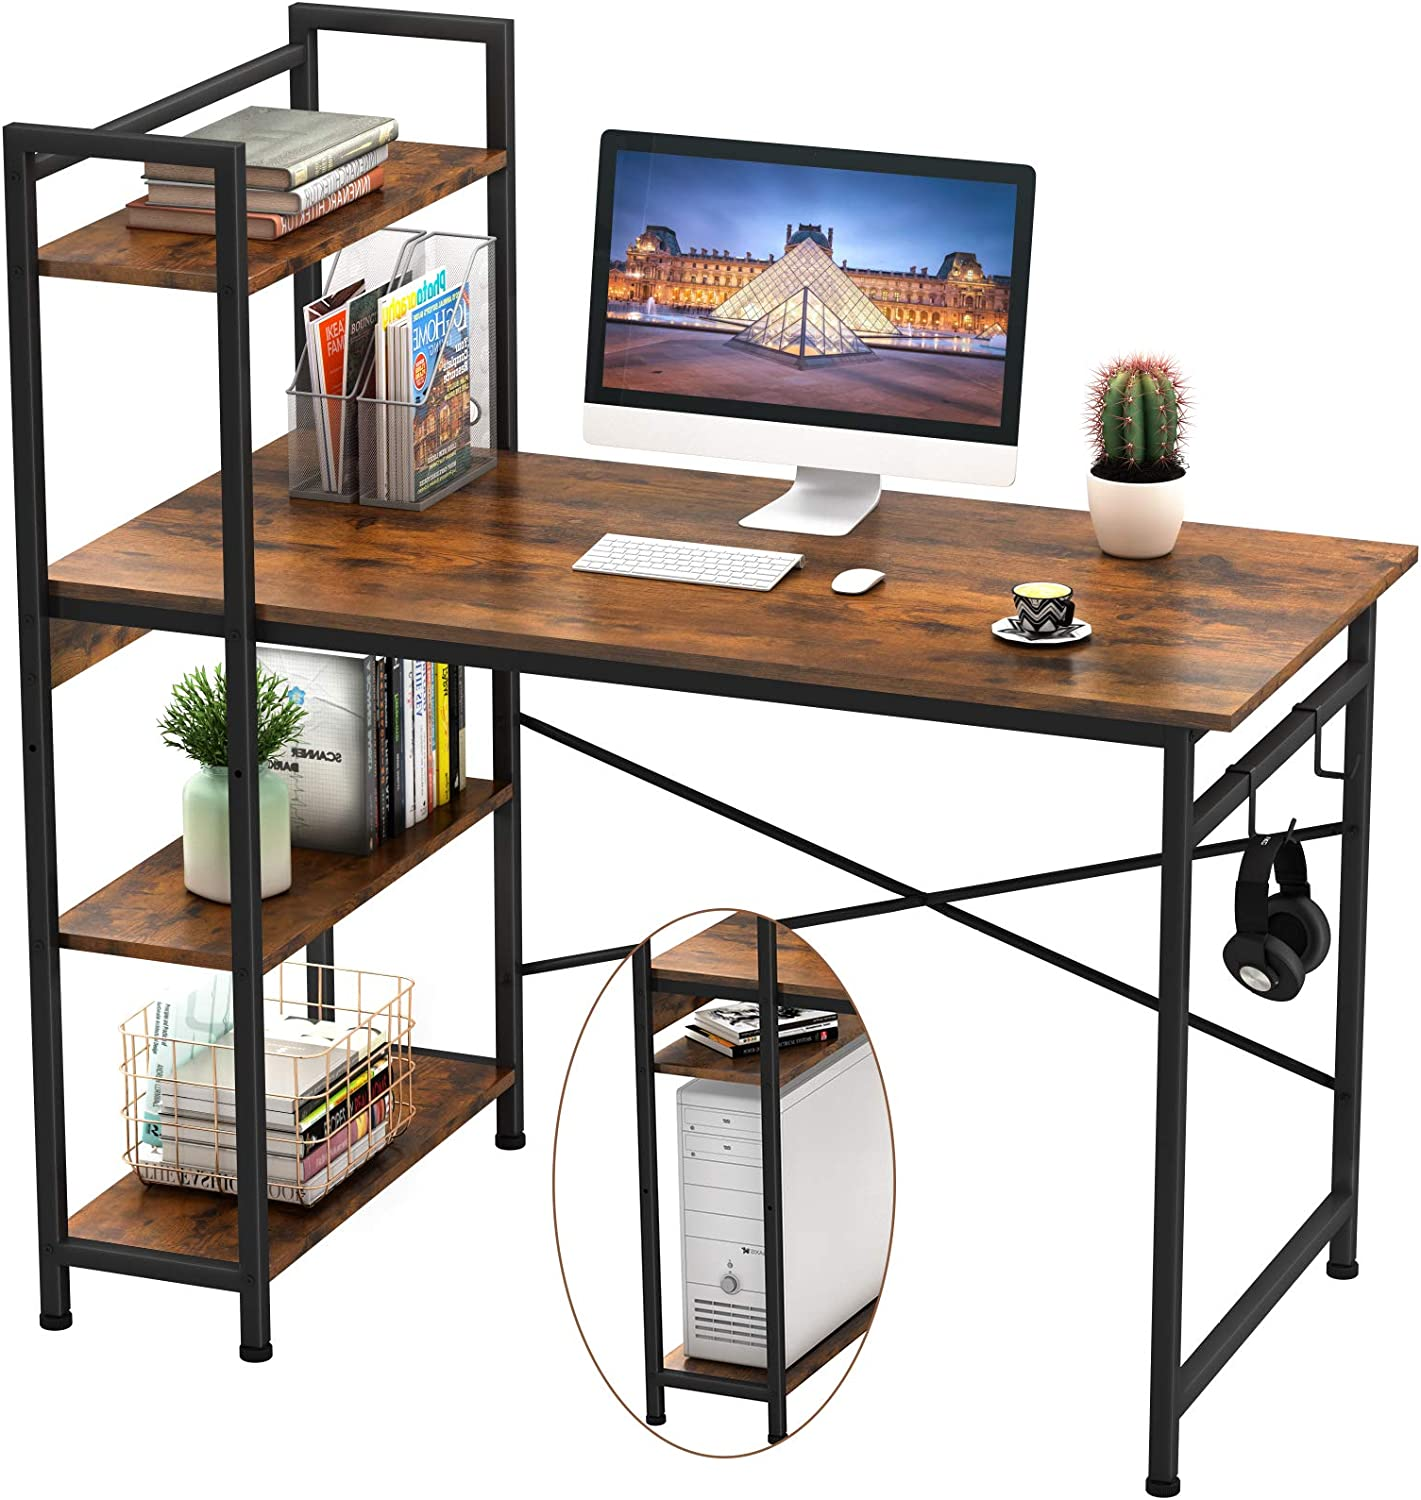 Engriy Computer Desk with 4 Tier Shelves for Home Office, 47